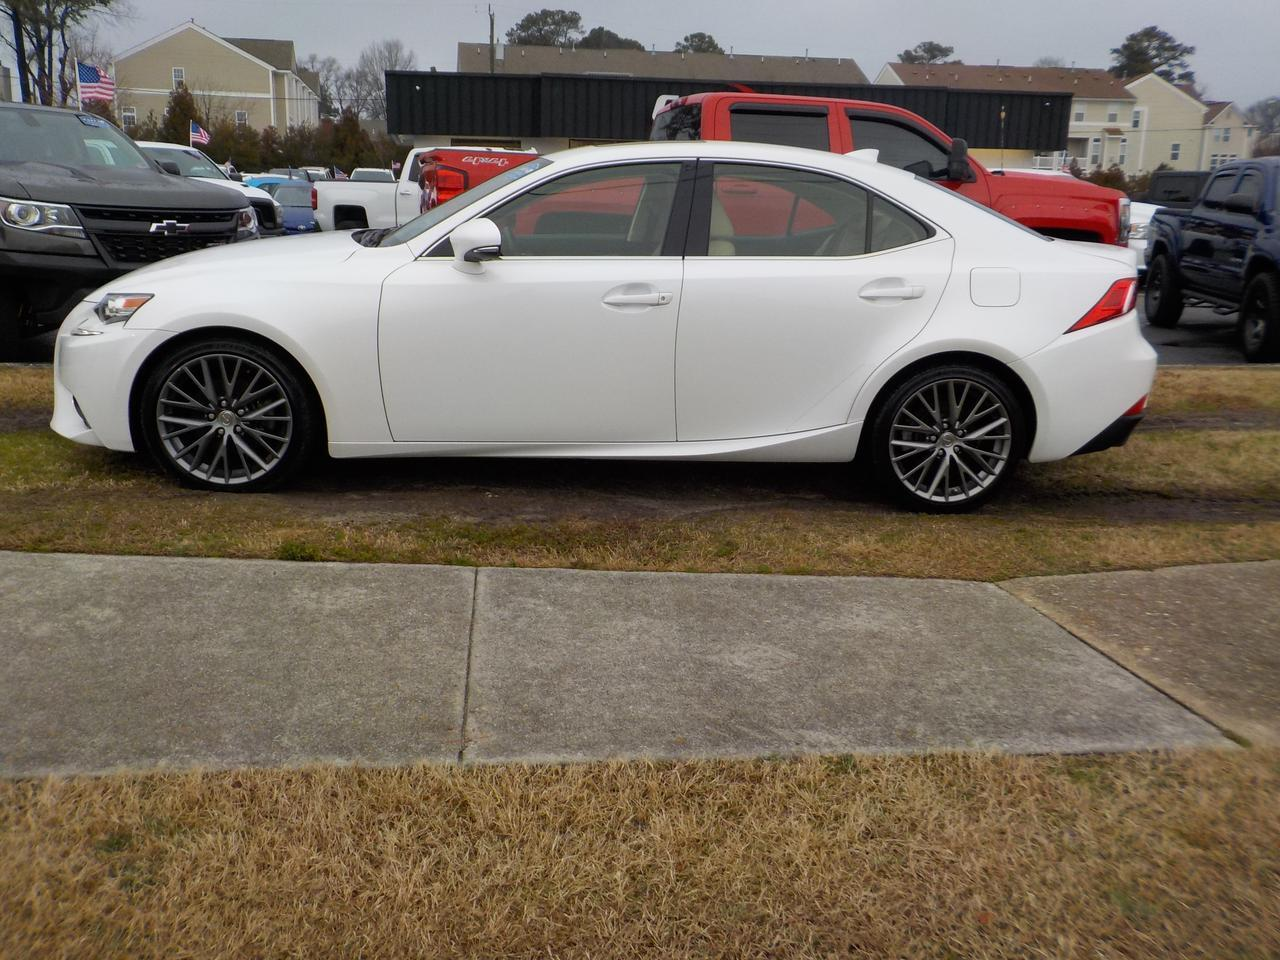 2014 LEXUS IS 250 SPORT AWD, LEATHER HEATED AND COOLED SEATS, NAVIGATION, BACKUP CAMERA, BLUETOOTH, ONLY 54K MILES! Virginia Beach VA